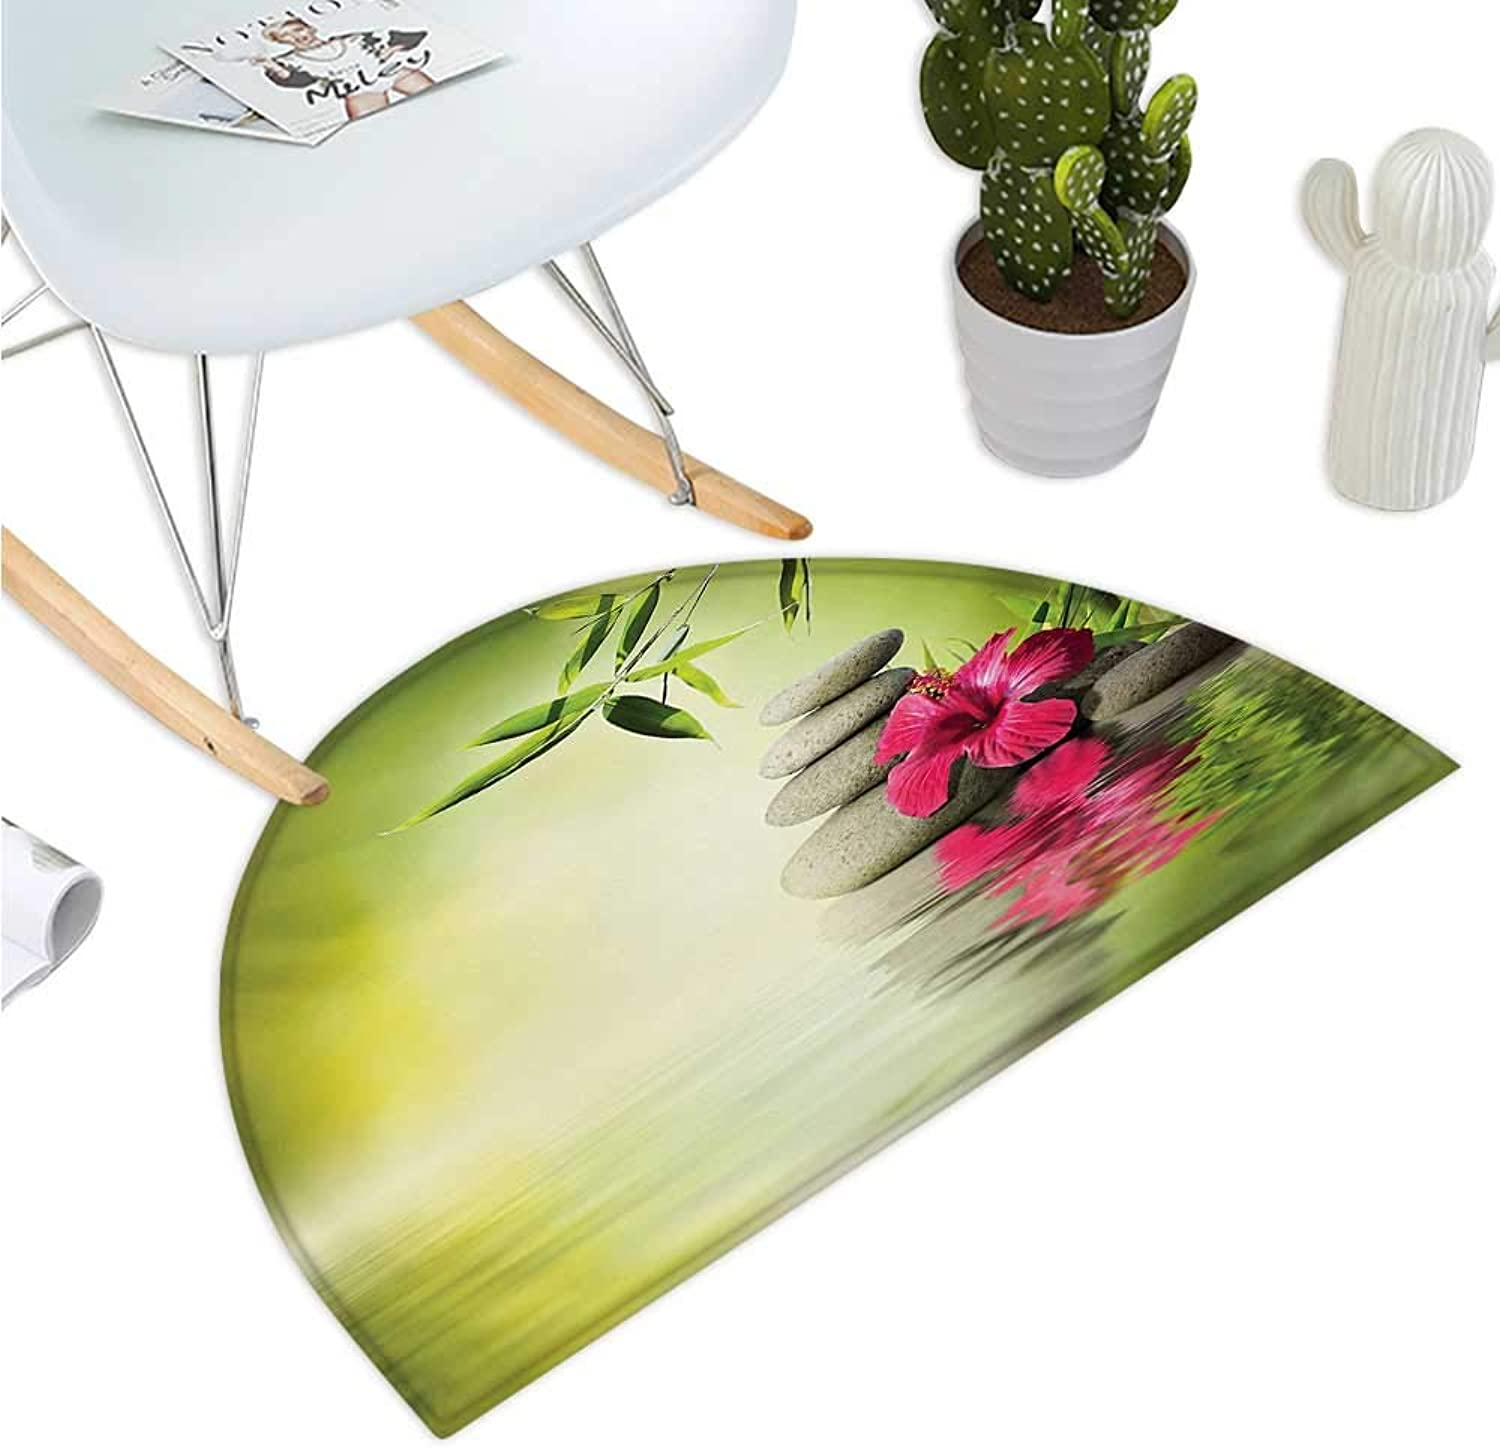 Spa Semicircle Doormat Stones and Bamboo Leaves on The Water Pool Meditation Freshness Relaxing Theme Entry Door Mat H 43.3  xD 64.9  Apple Green Magenta